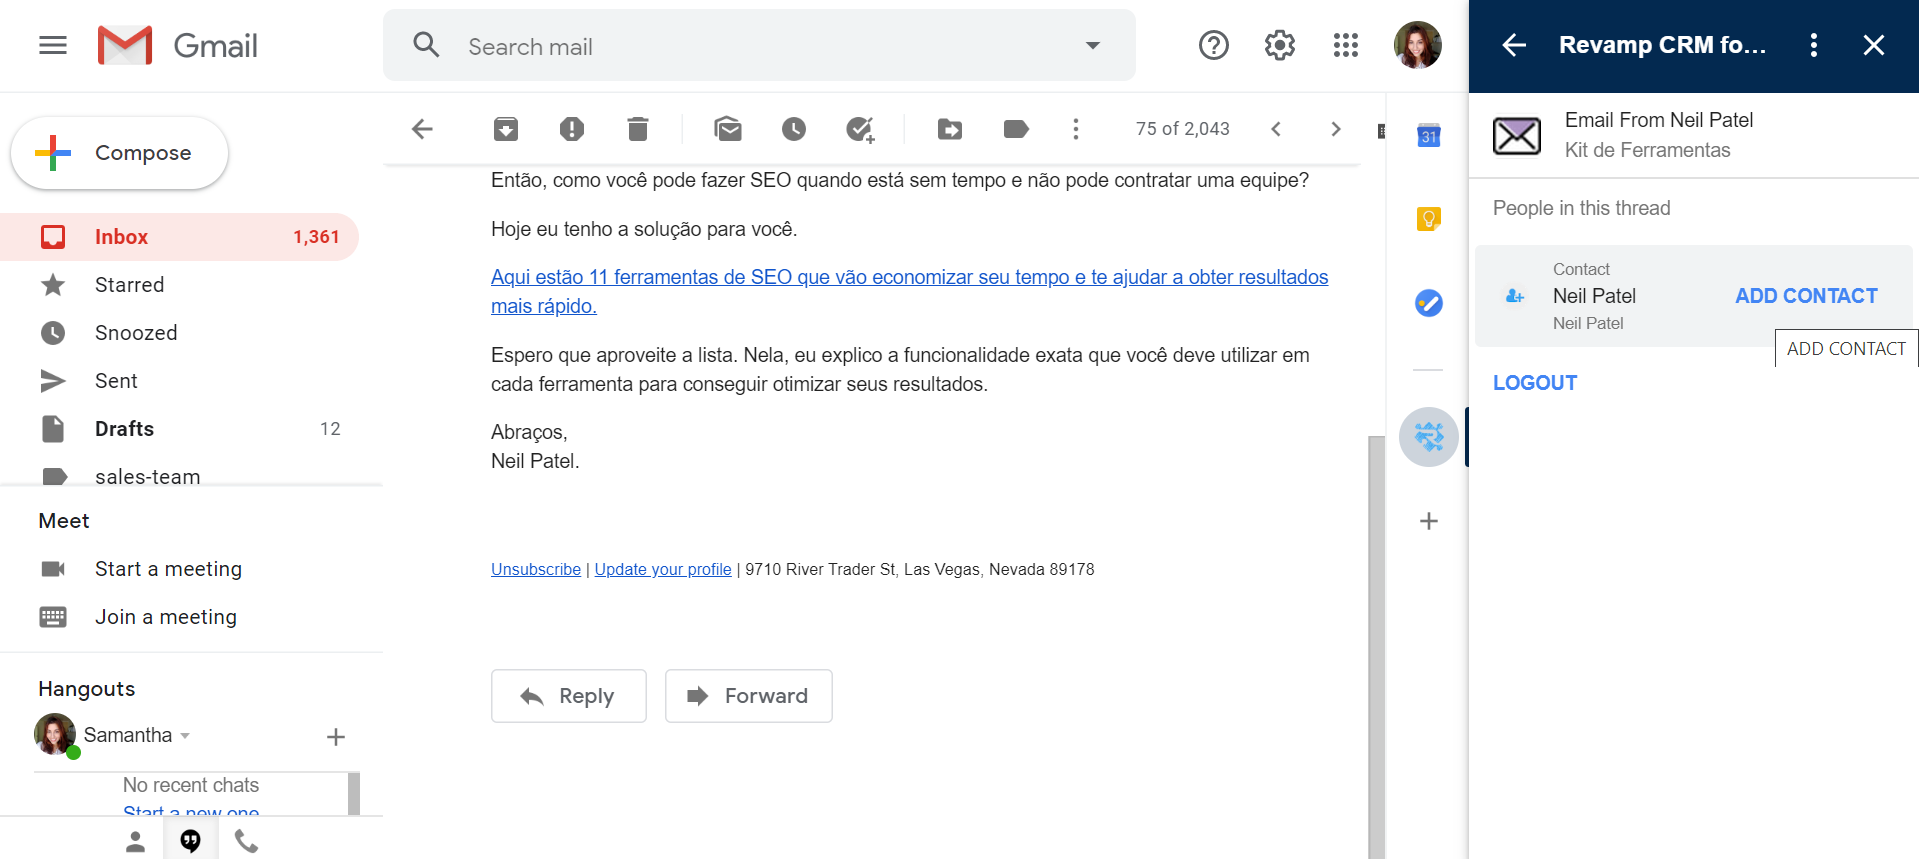 Revamp Free Crm Software in Gmail